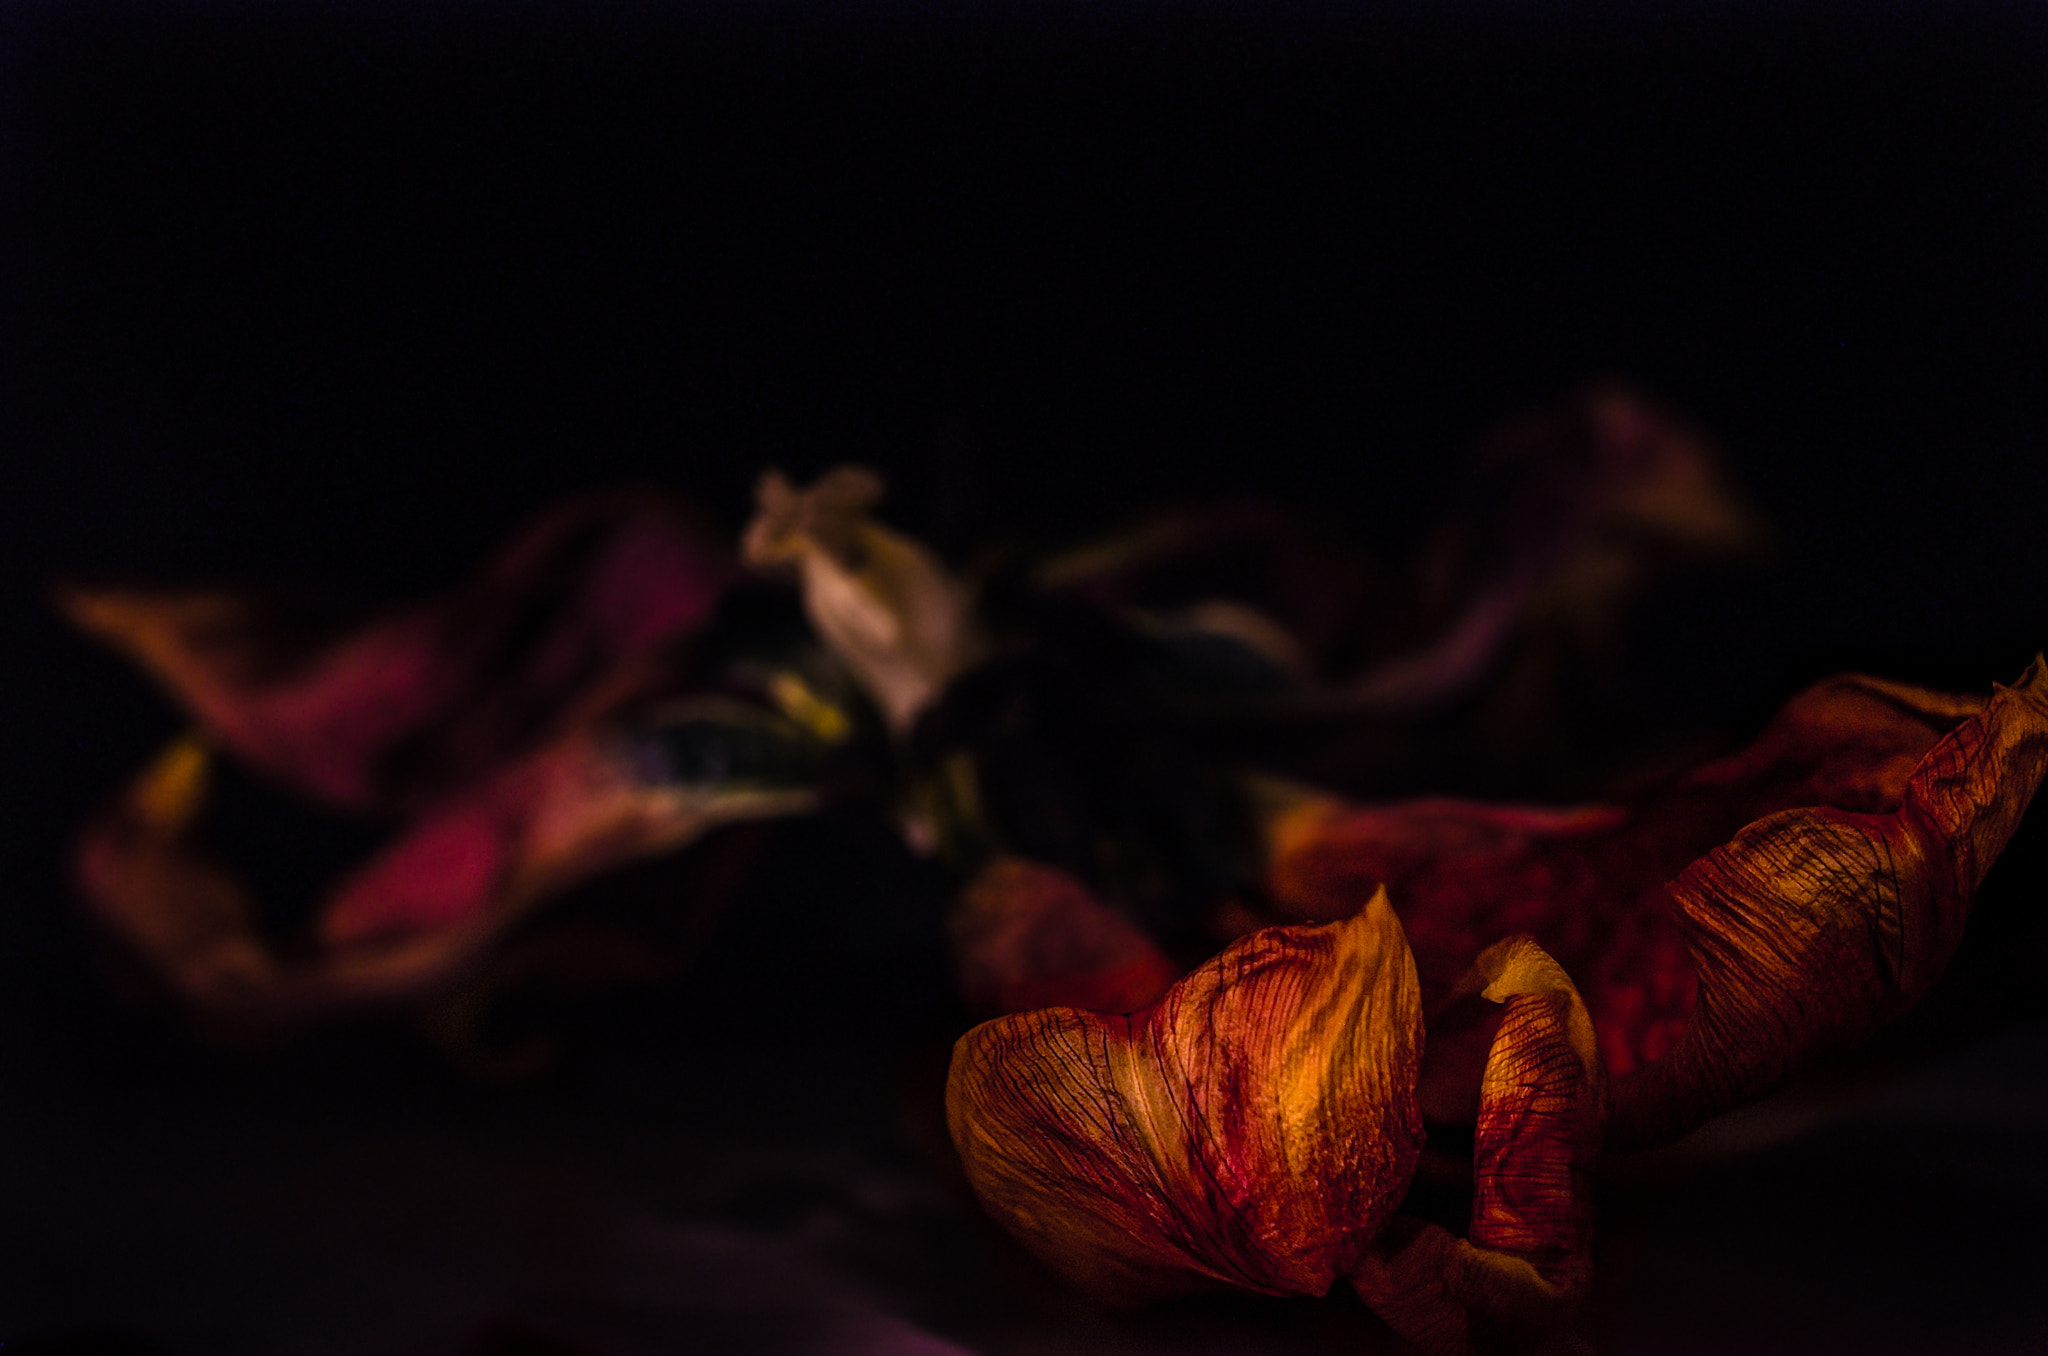 Photograph After Bloom by Kelly Anderson on 500px